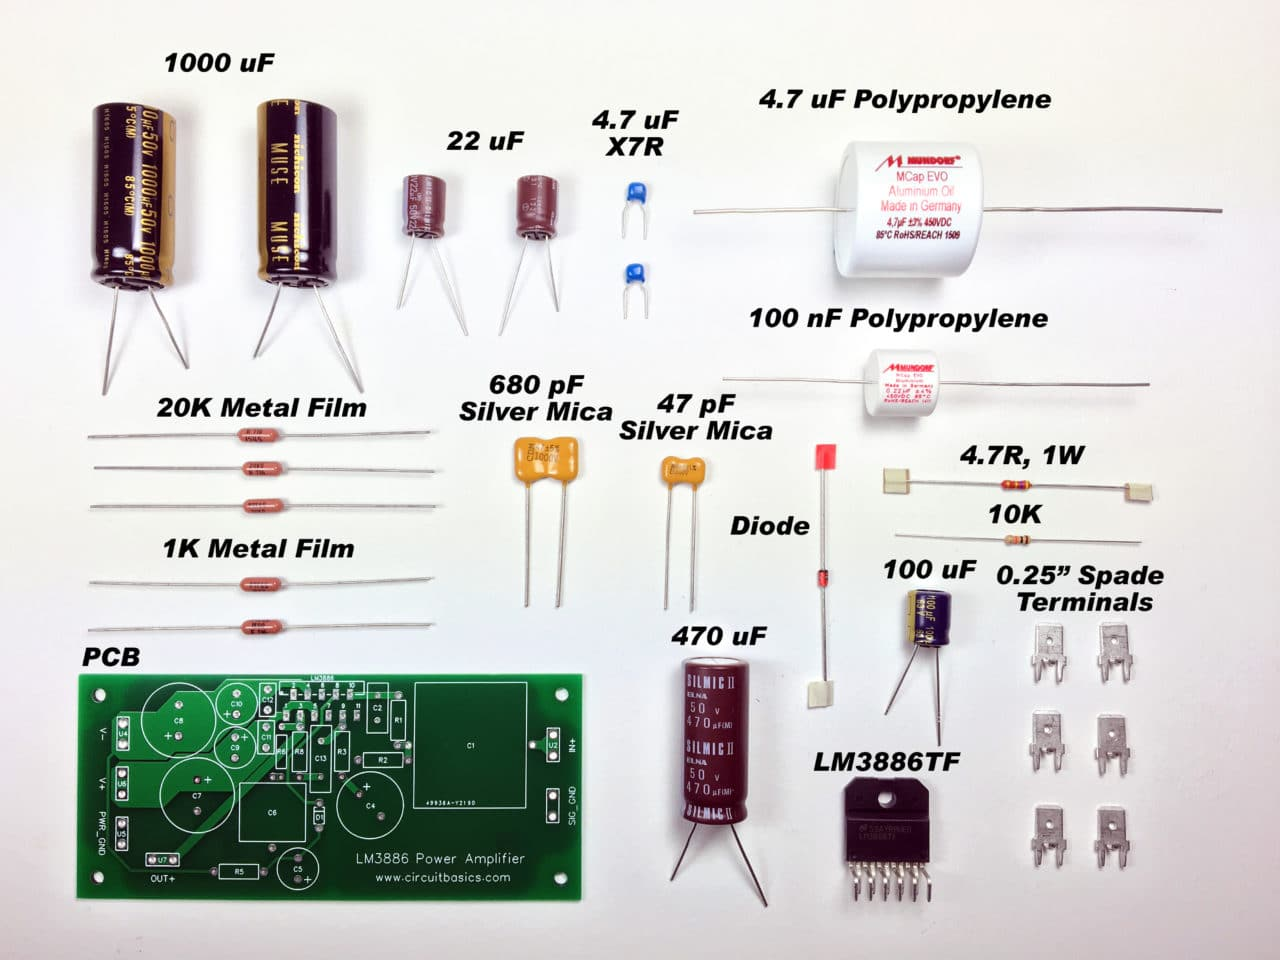 A Complete Guide To Design And Build Hi Fi Lm3886 Amplifier Something In Either The Schematic Of Driver Circuit Or With Total Cost Came About 118 For Both Channels Not Including Chassis Power Supply Wiring Parts You Can It Lot Less Cheaper